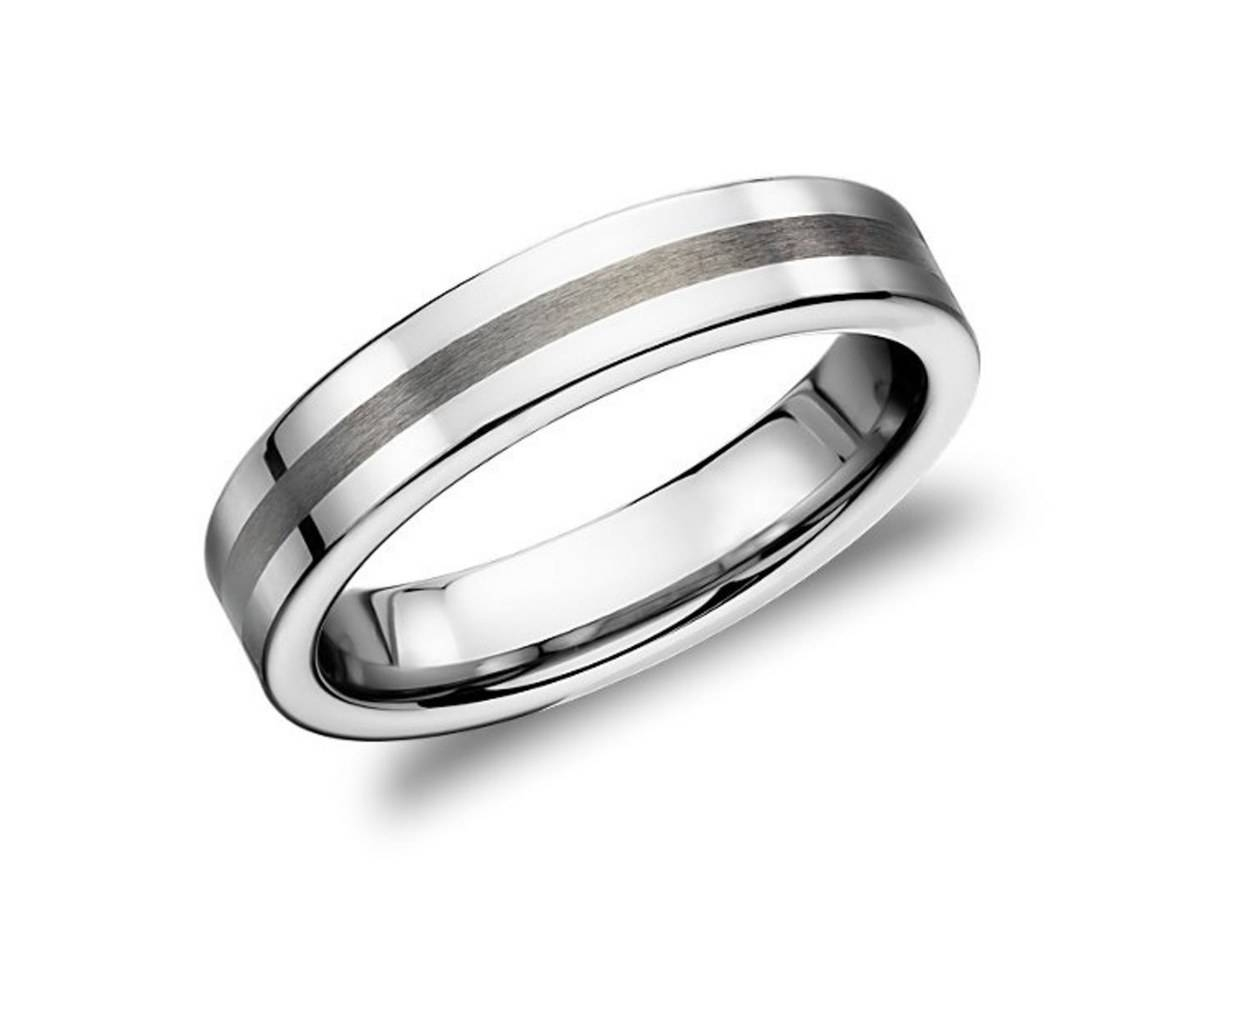 15 Men's Wedding Bands Your Groom Won't Want To Take Off | Glamour With Regard To Guys Wedding Bands (Gallery 273 of 339)